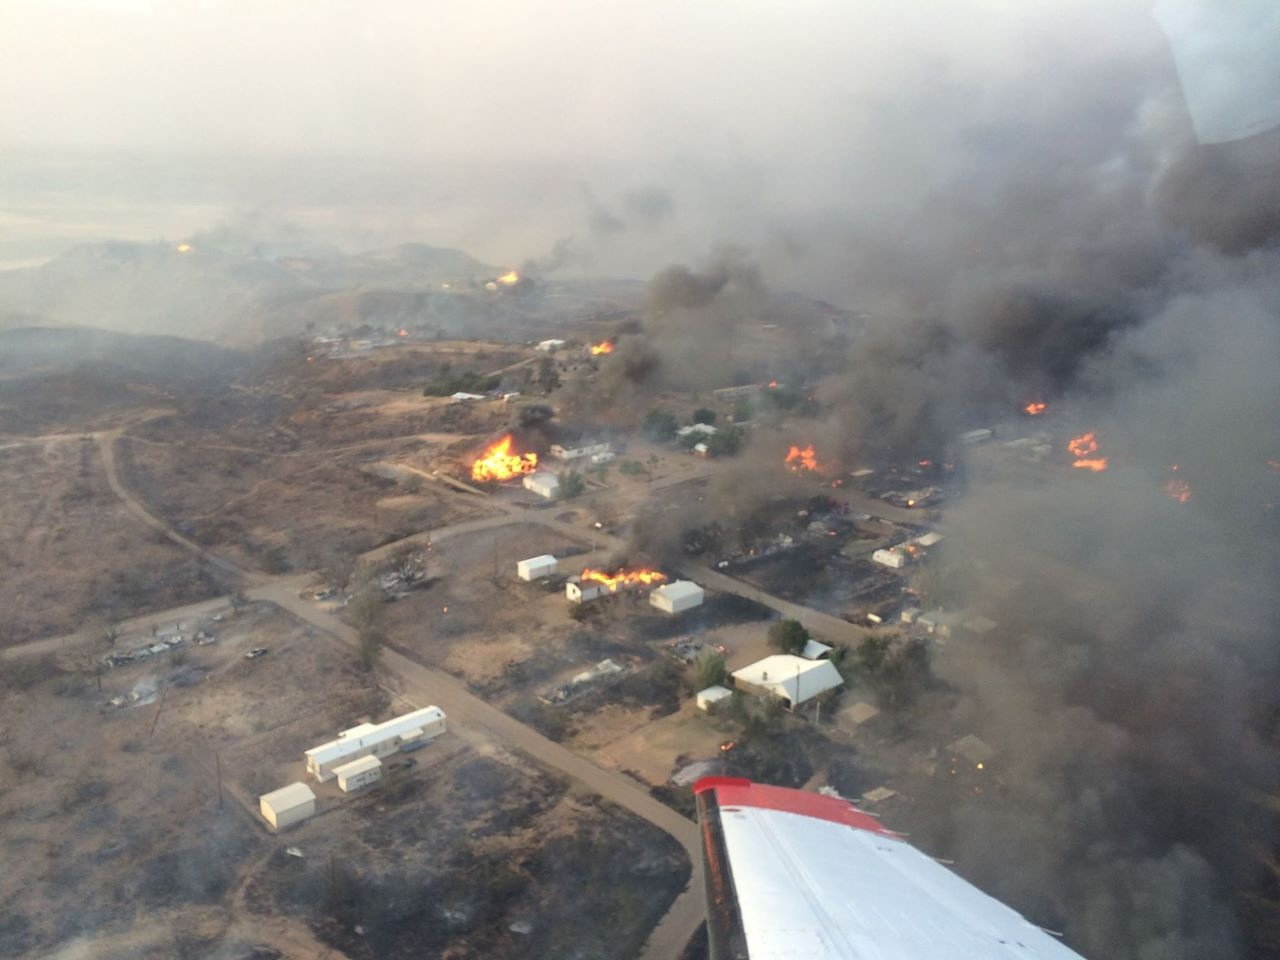 Aerial view of a wildfire in a community with smoke throughout the sky